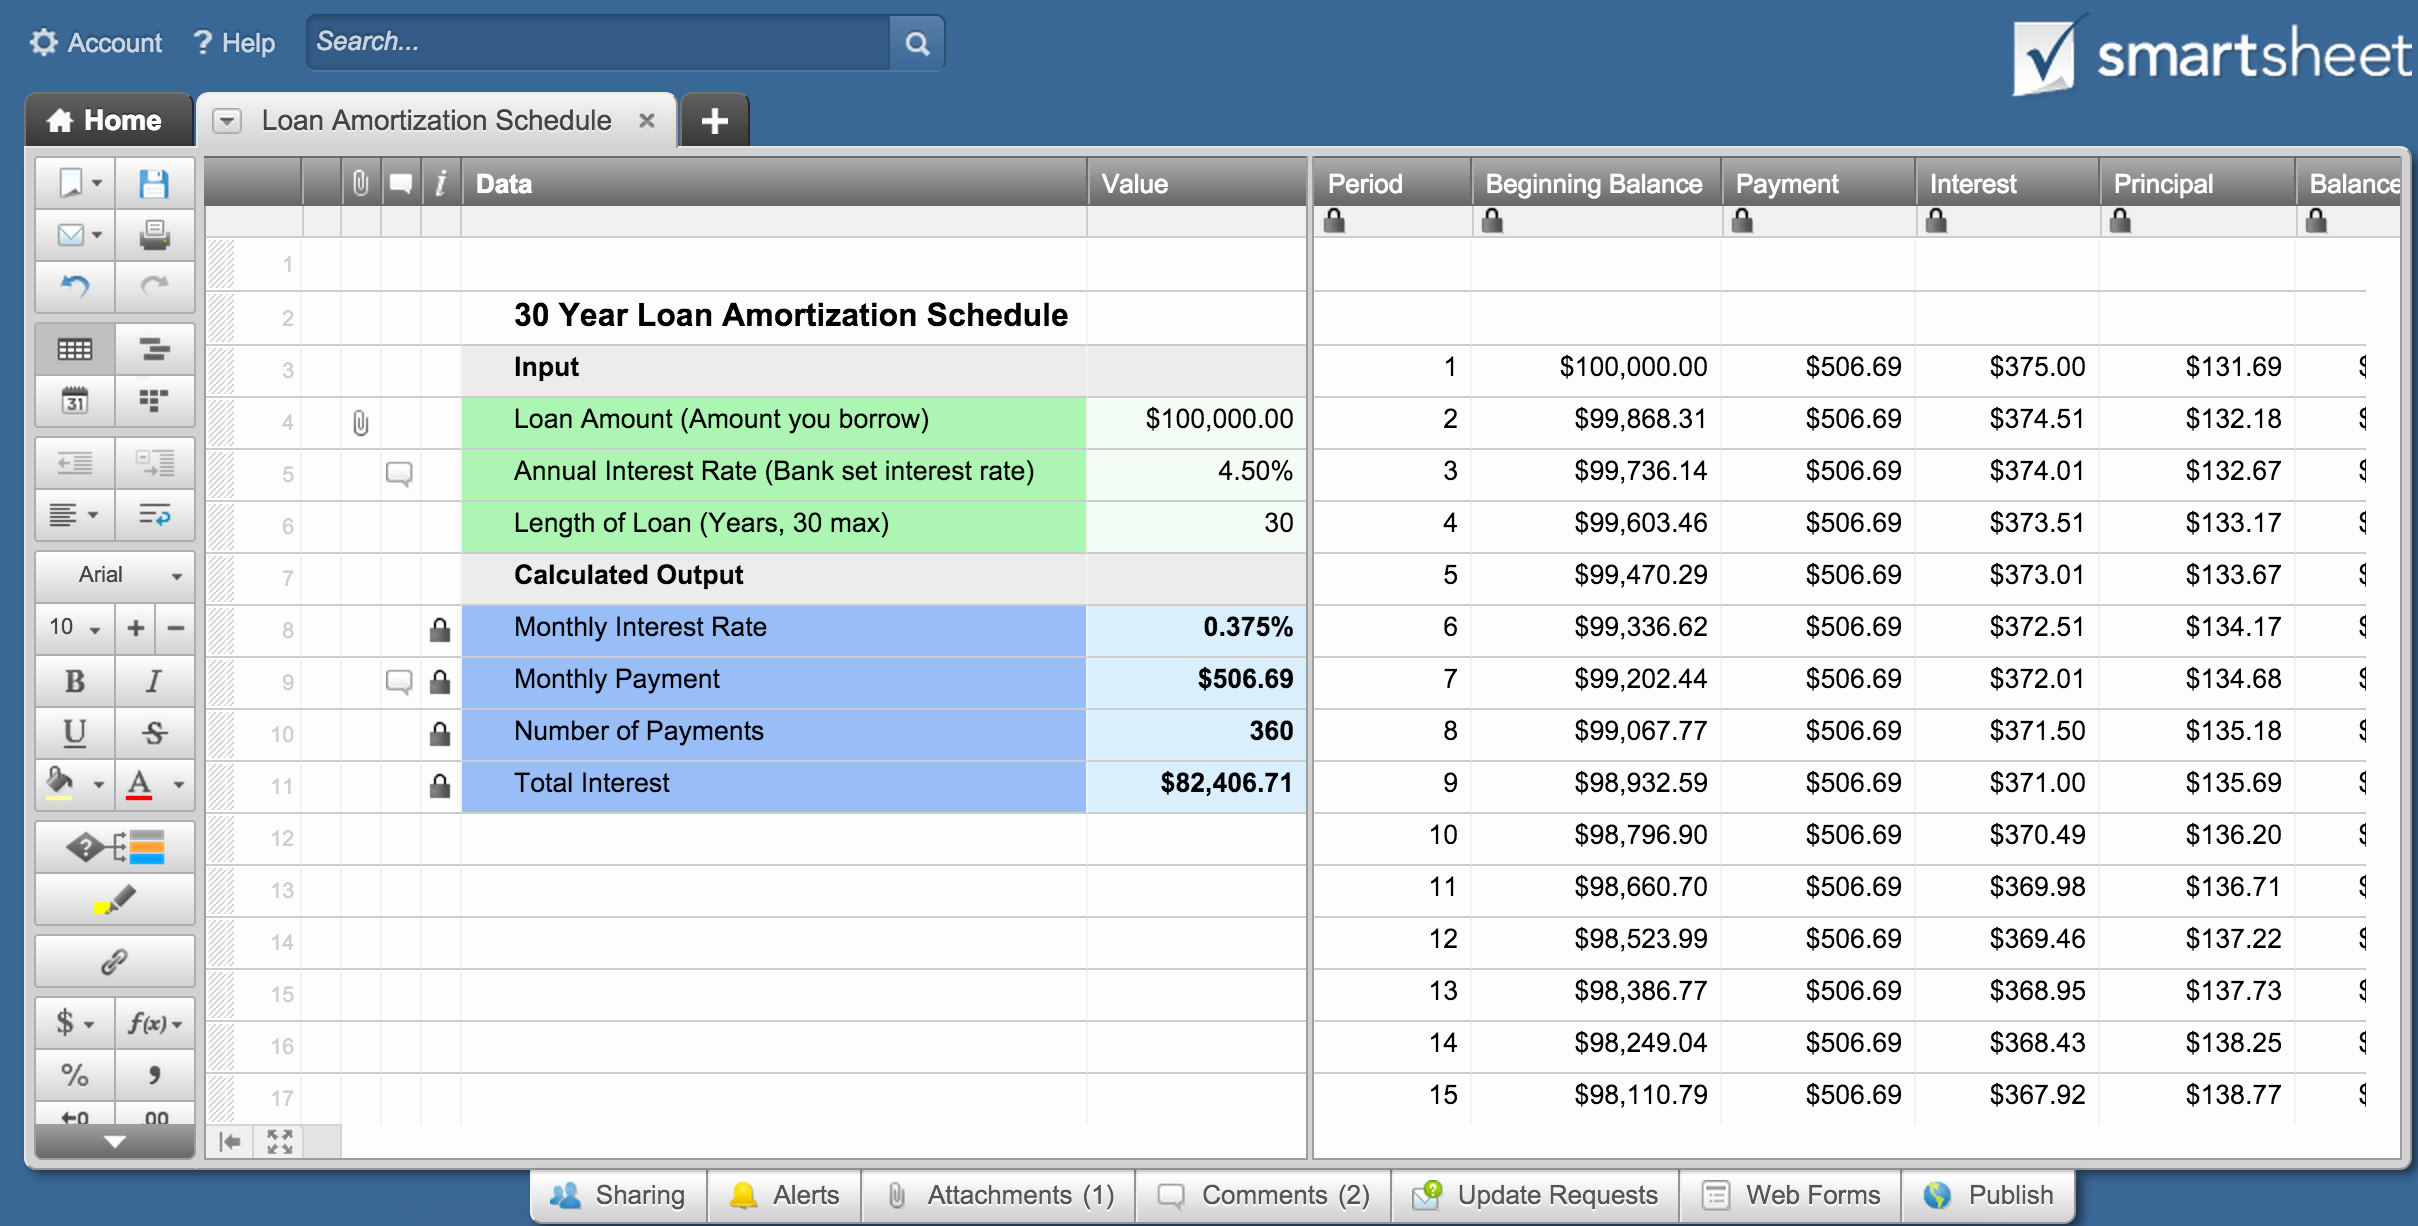 Loan Amortization Calculator Extra Payments Unique Excel Loan Amortization Schedule with Extra Principal